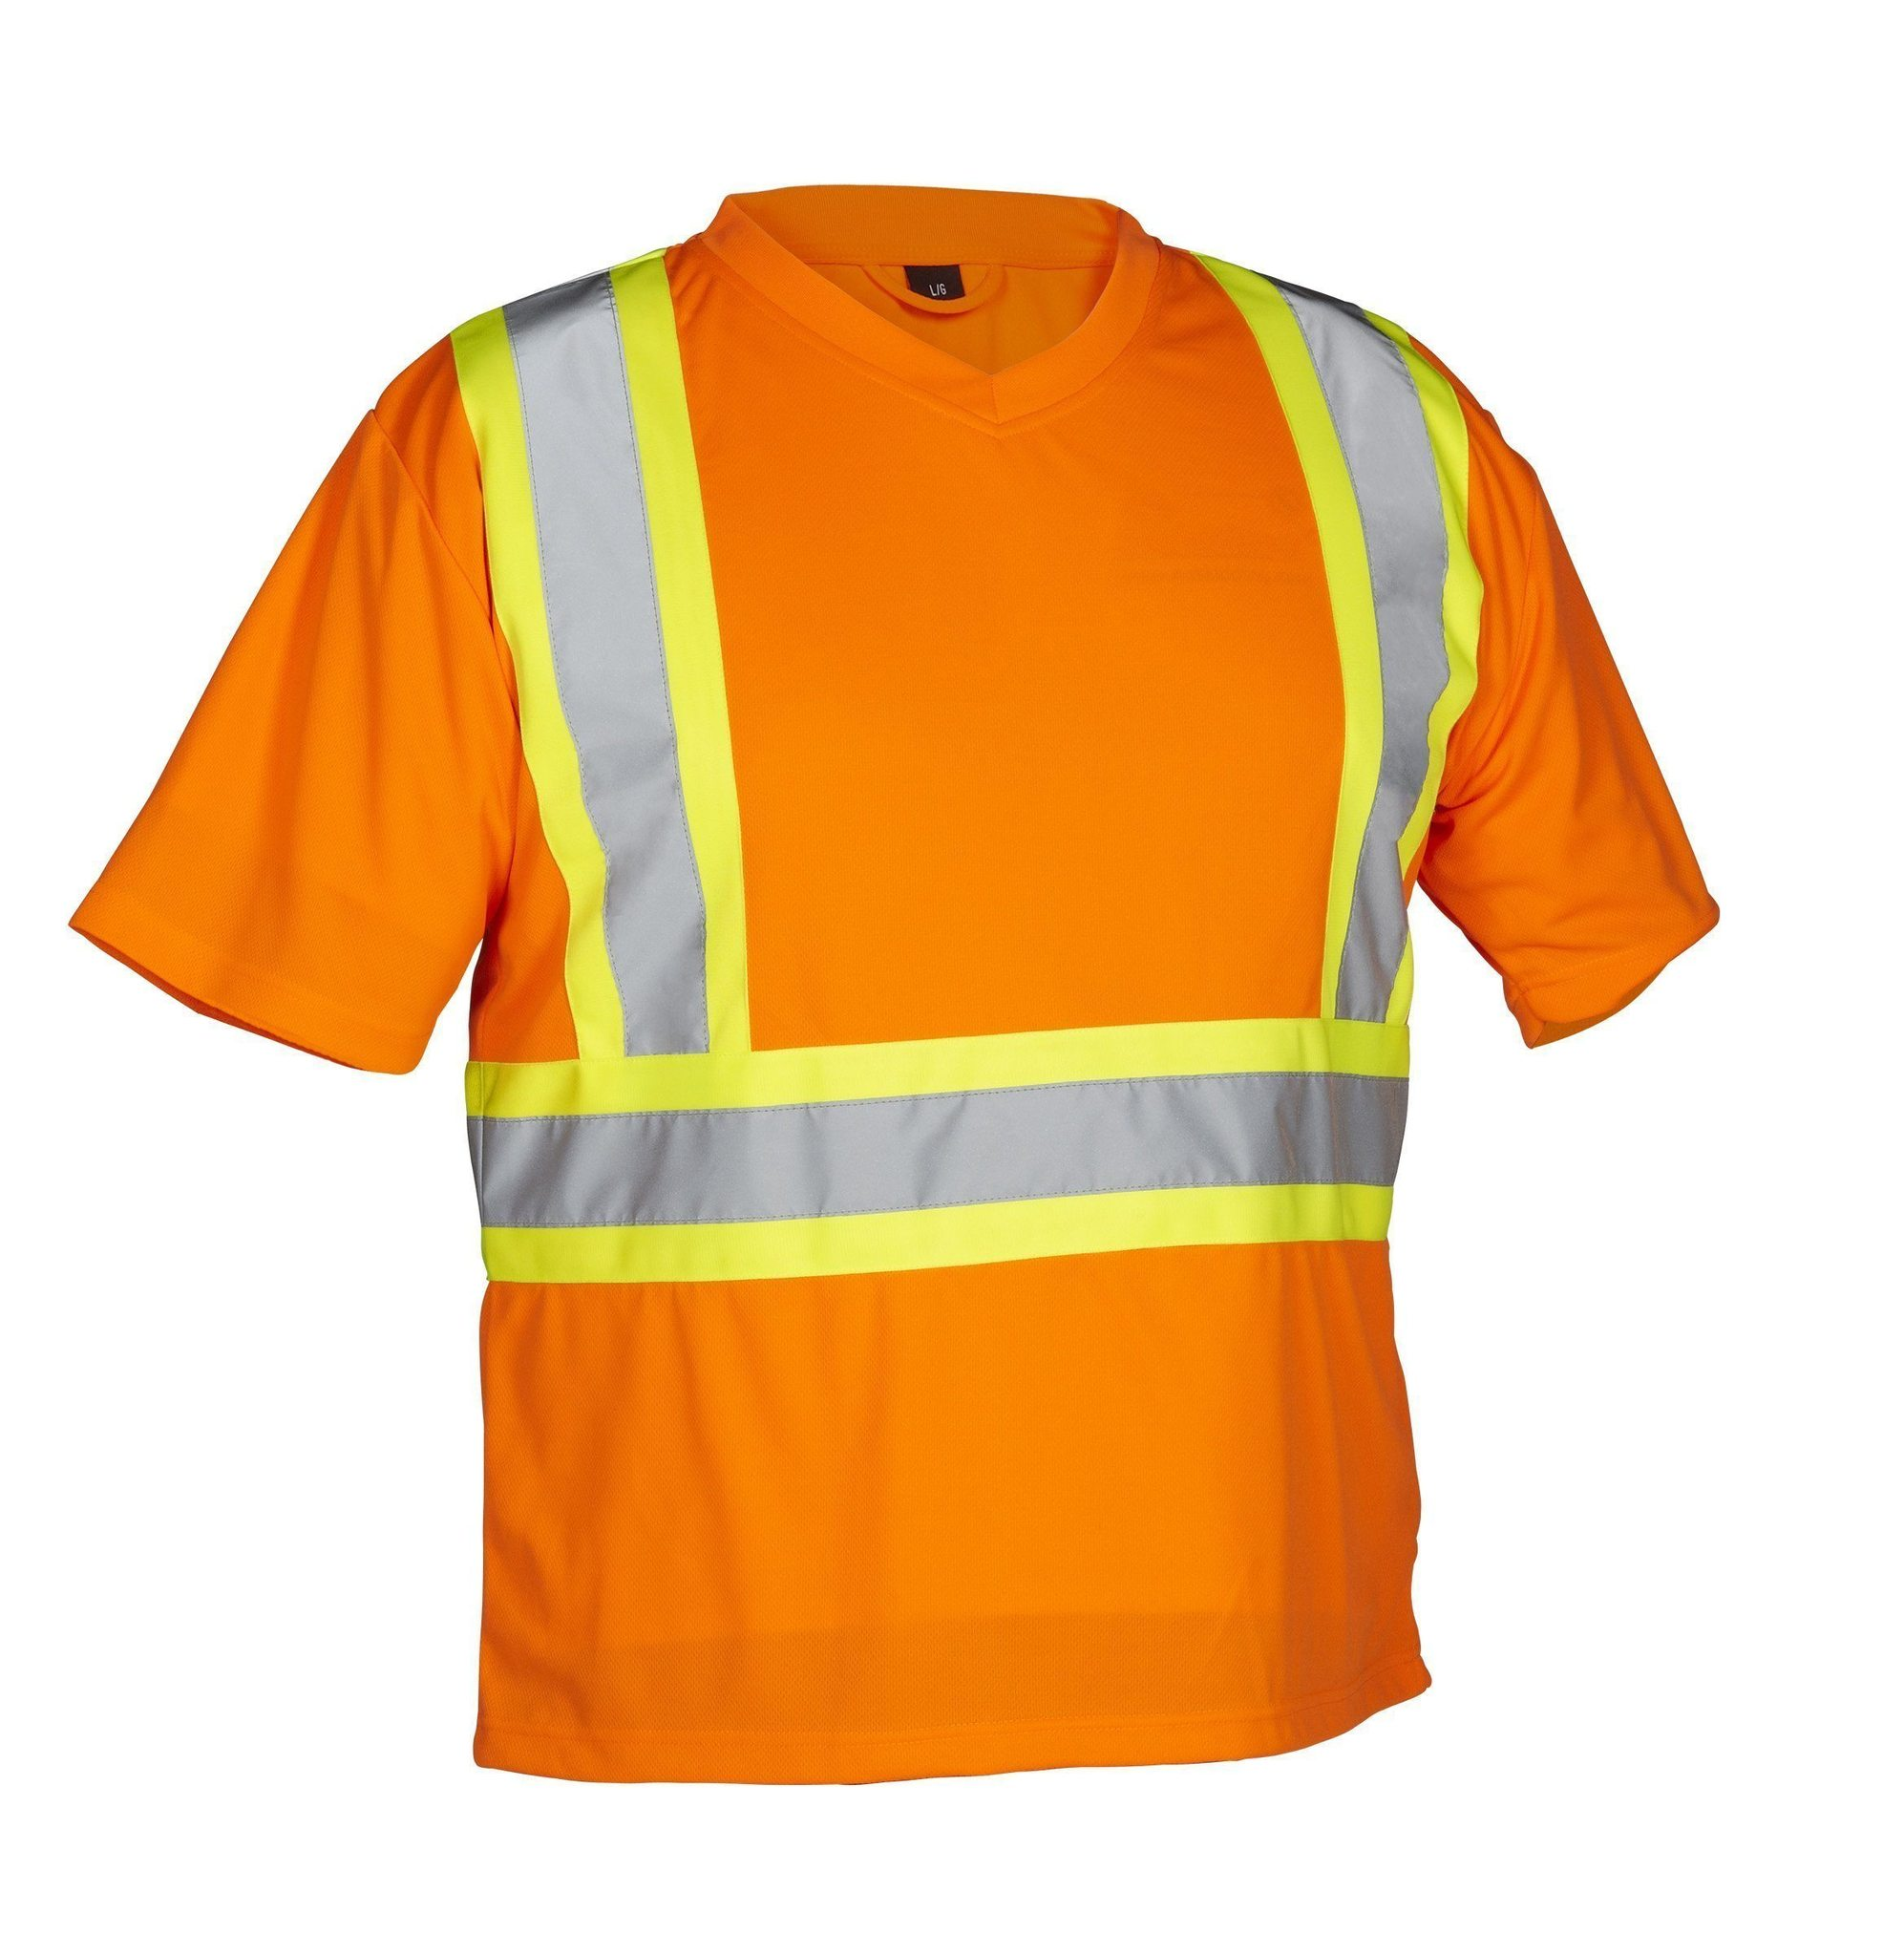 Safety T-shirt - Forcefield - Short Sleeve 022-BEPCSA